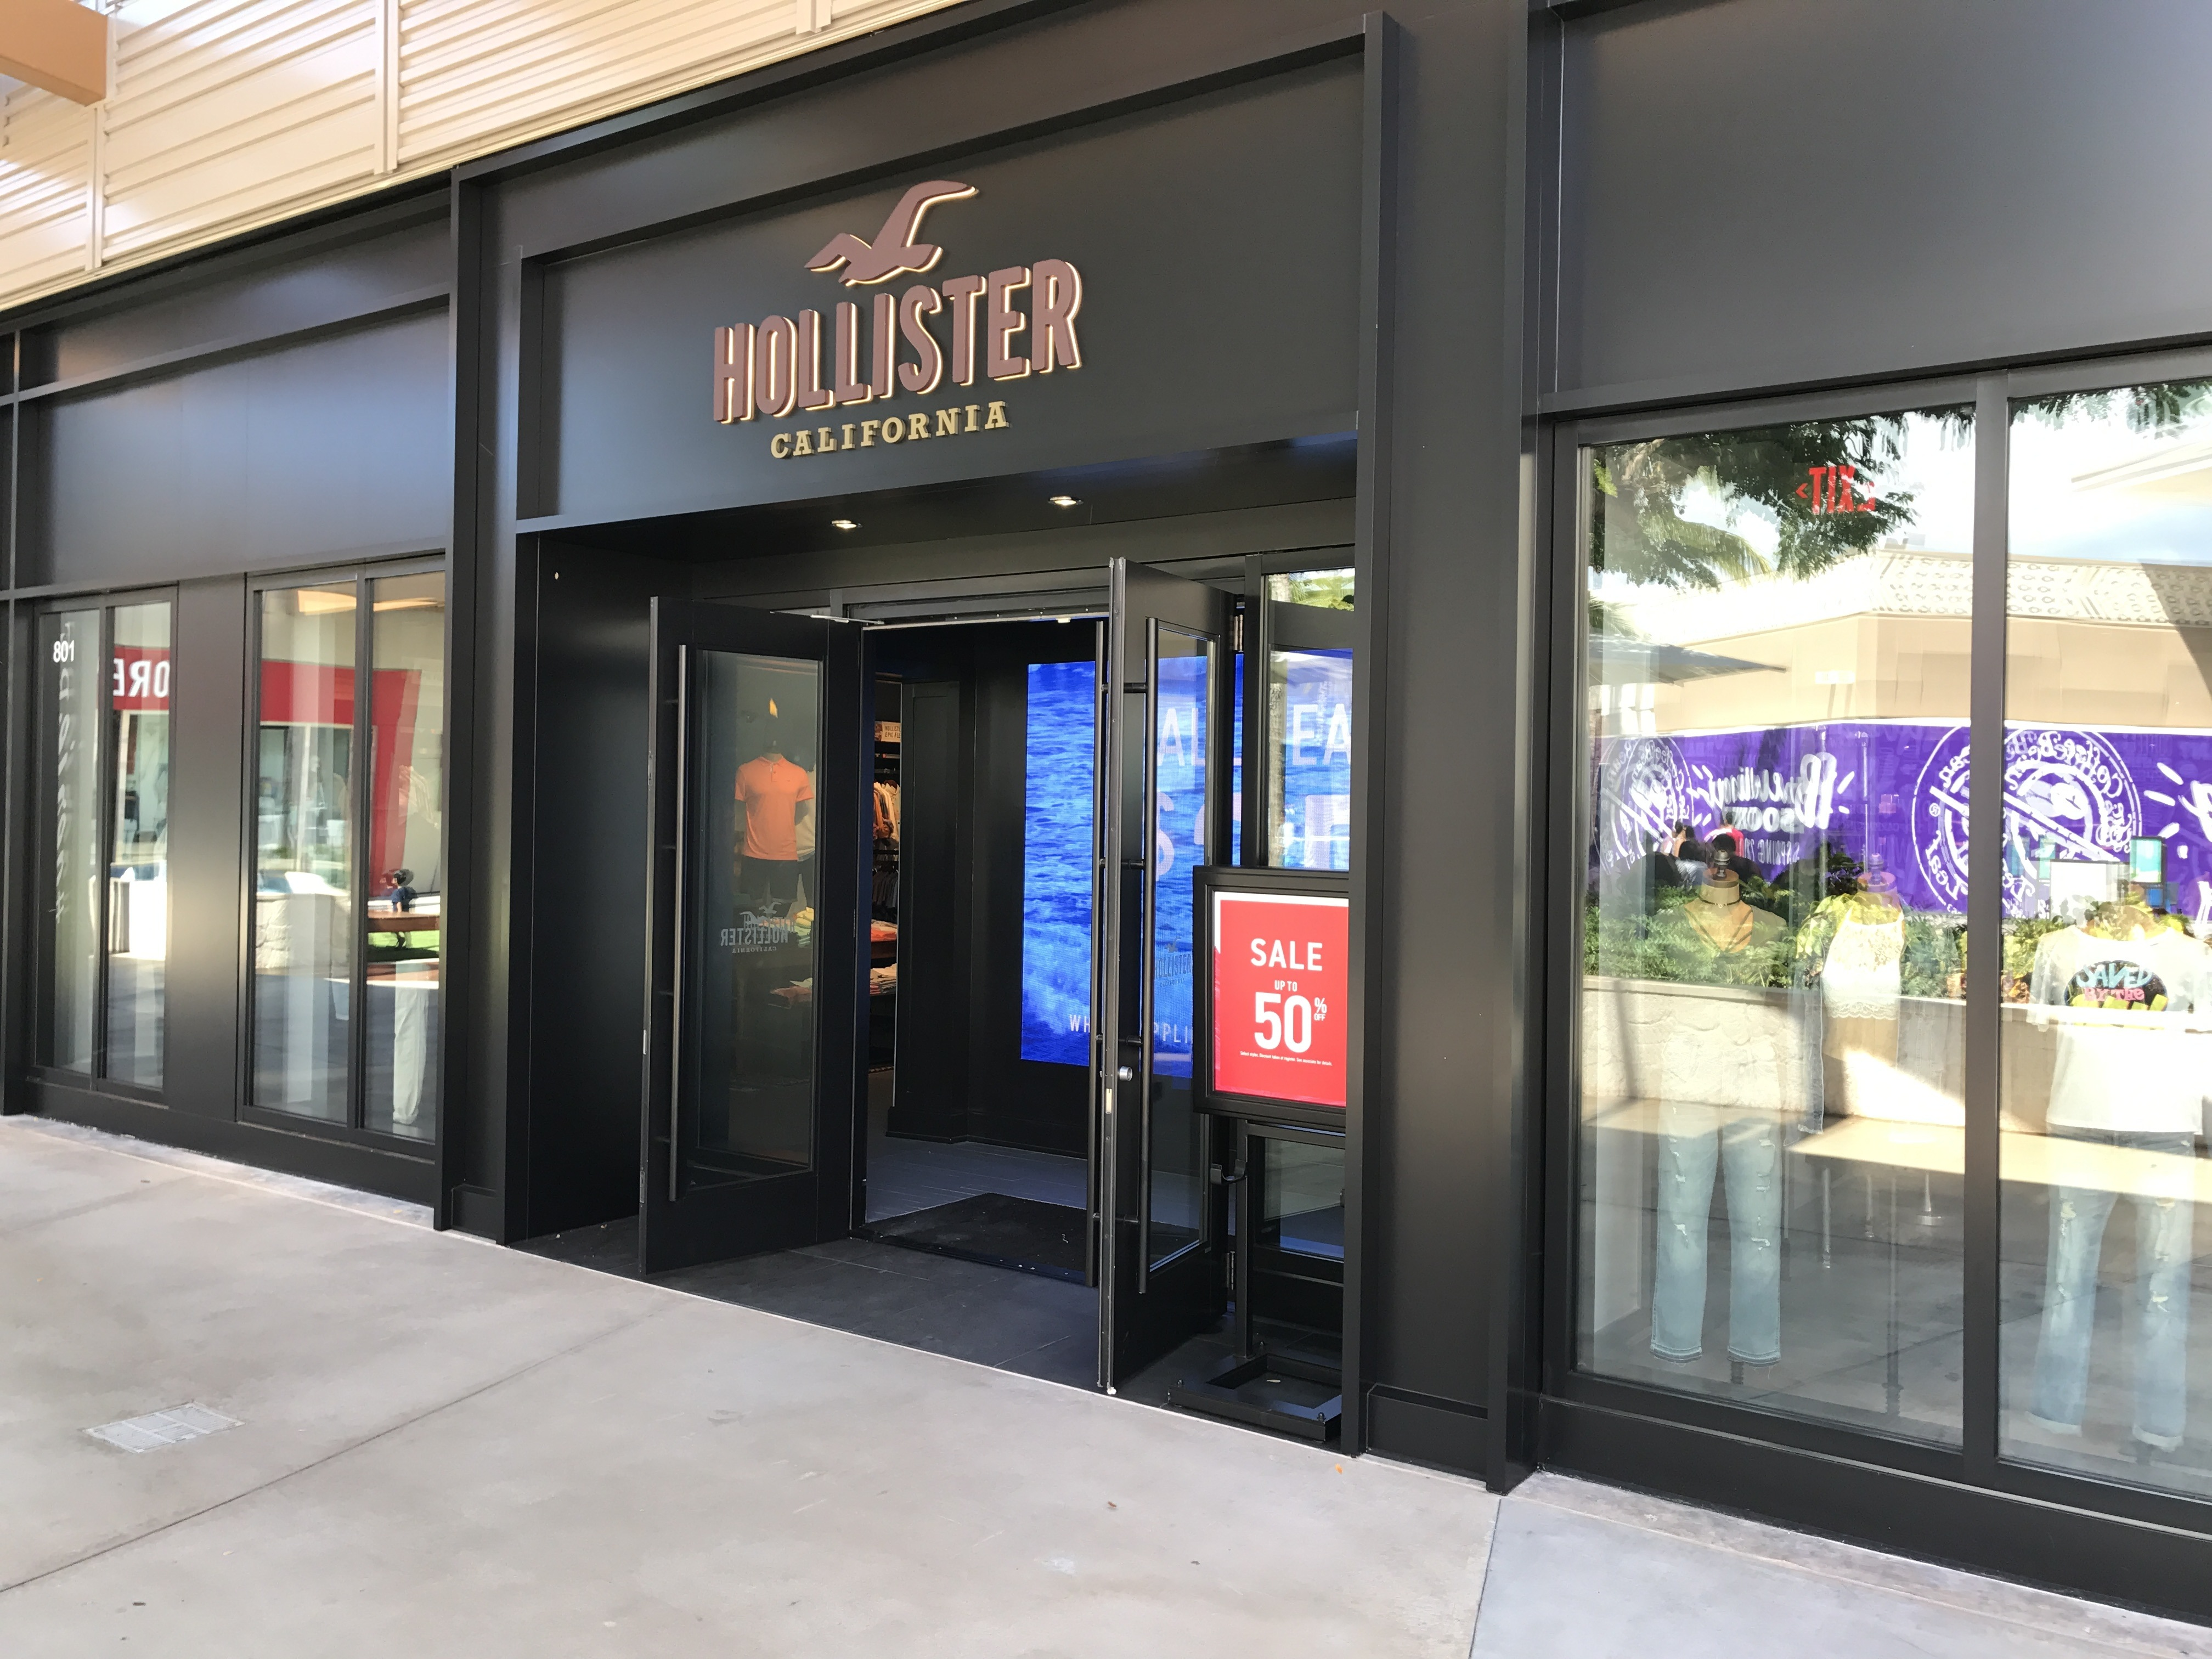 hollister middle eastern singles Abercrombie & fitch co announced that it has expanded its existing relationship with majid al futtaim fashion through a  and hollister brands in the middle east.